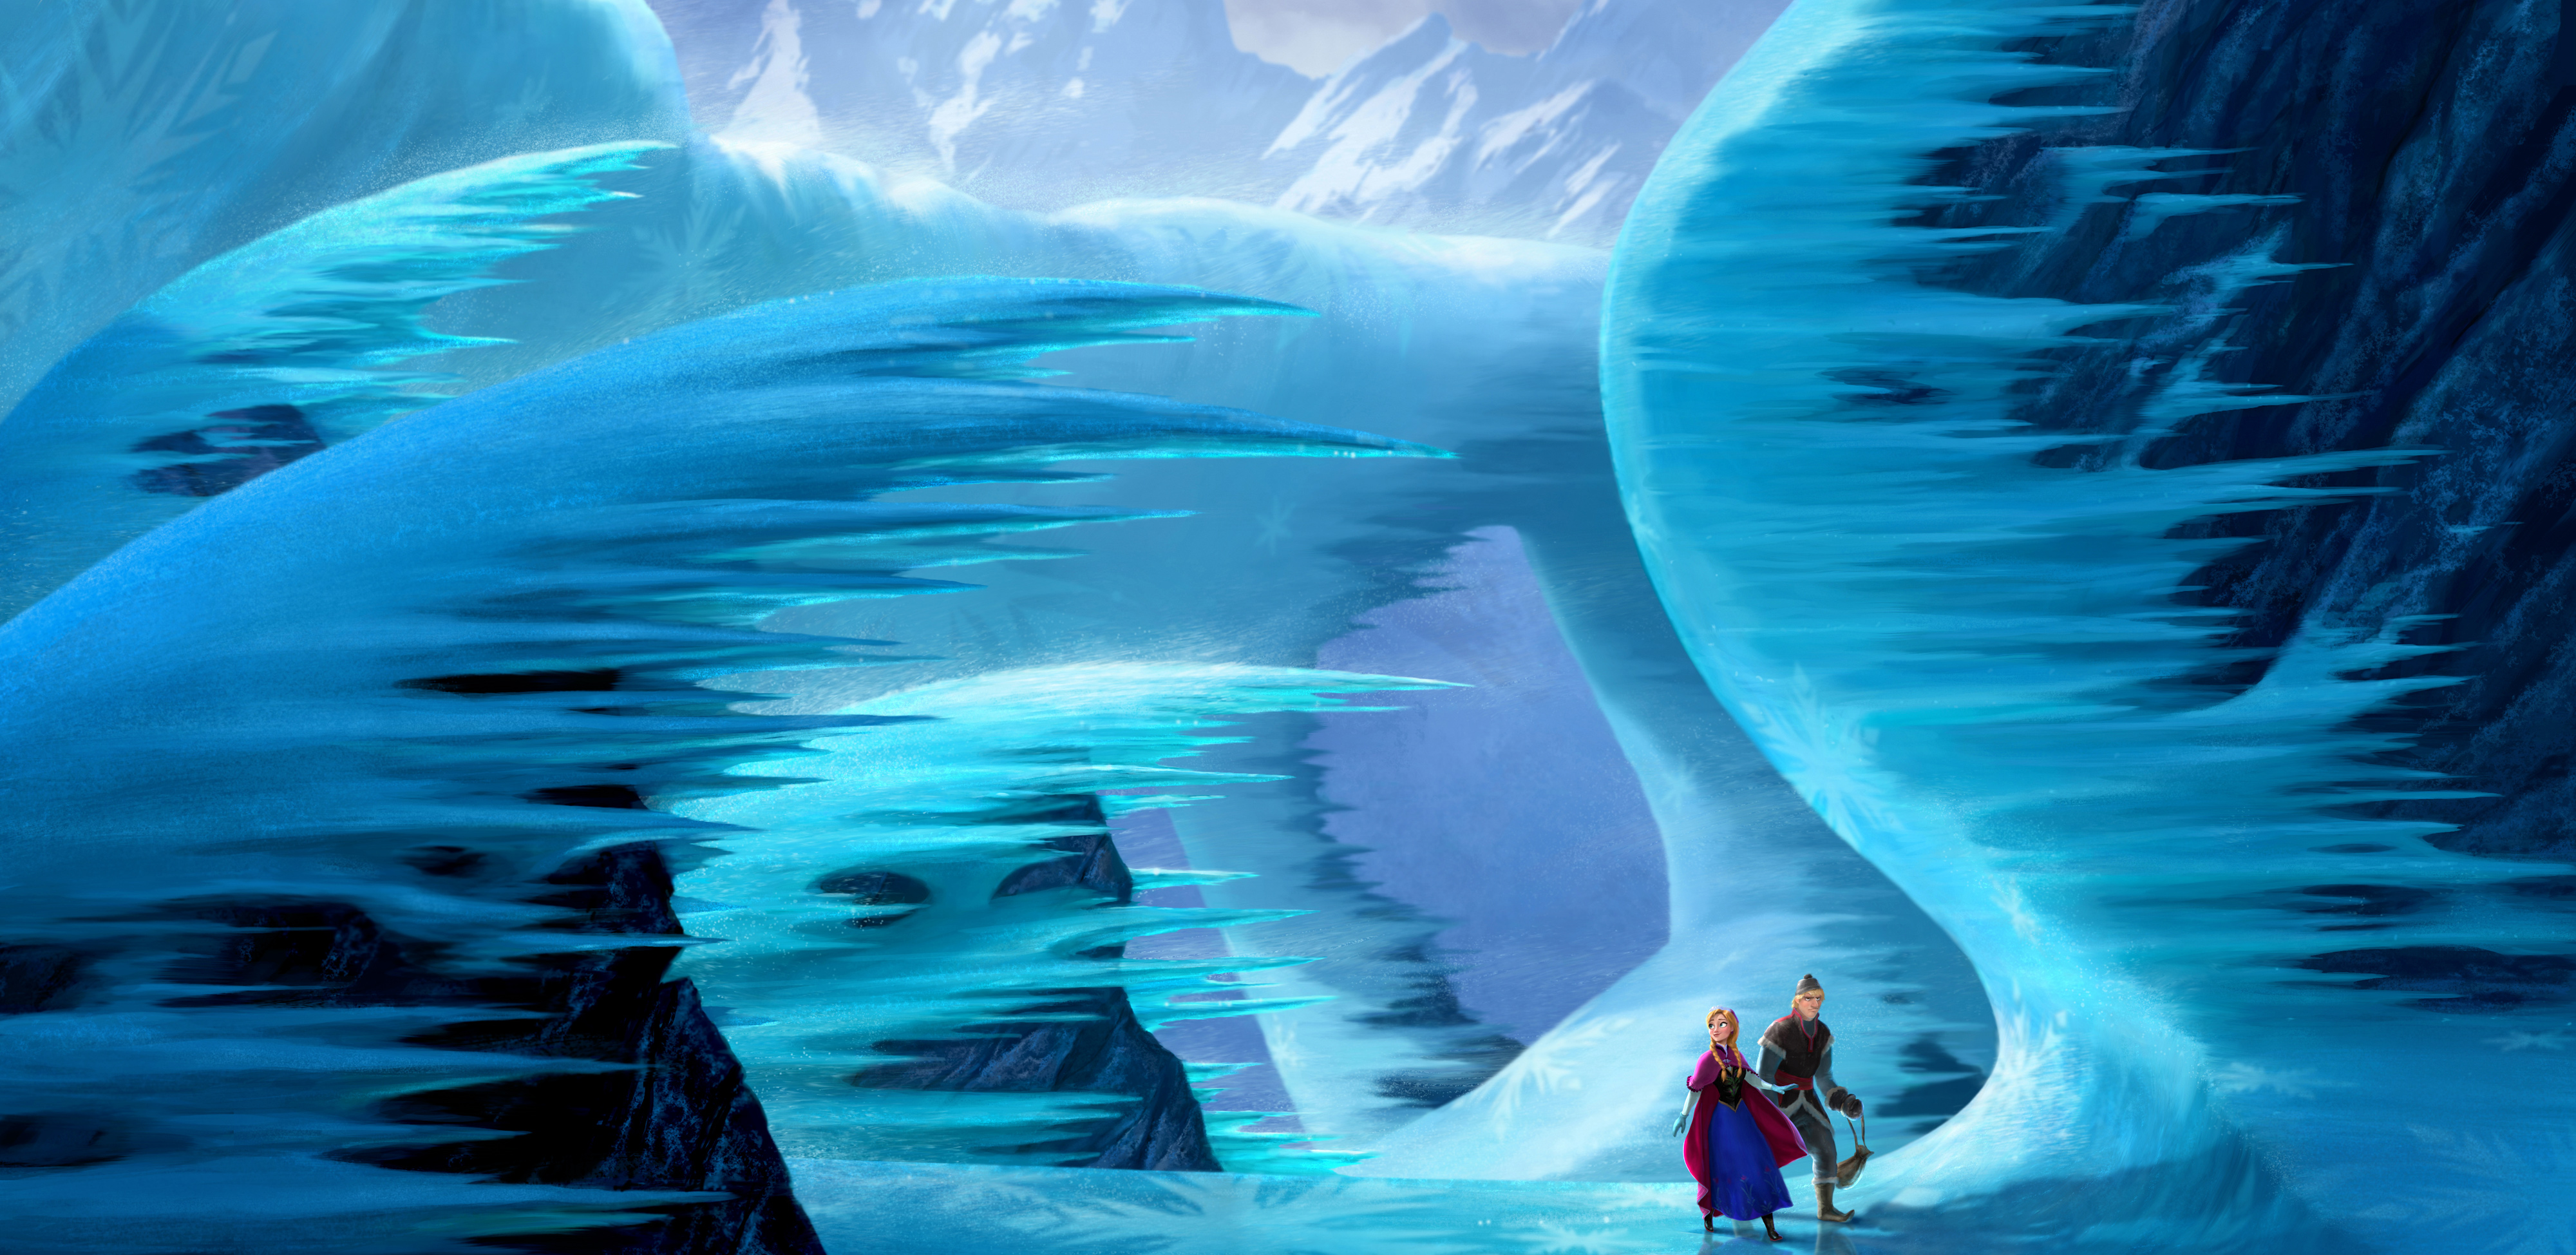 First Look at Disney's Next Animated Movie 'Frozen' is, Well, Frozen